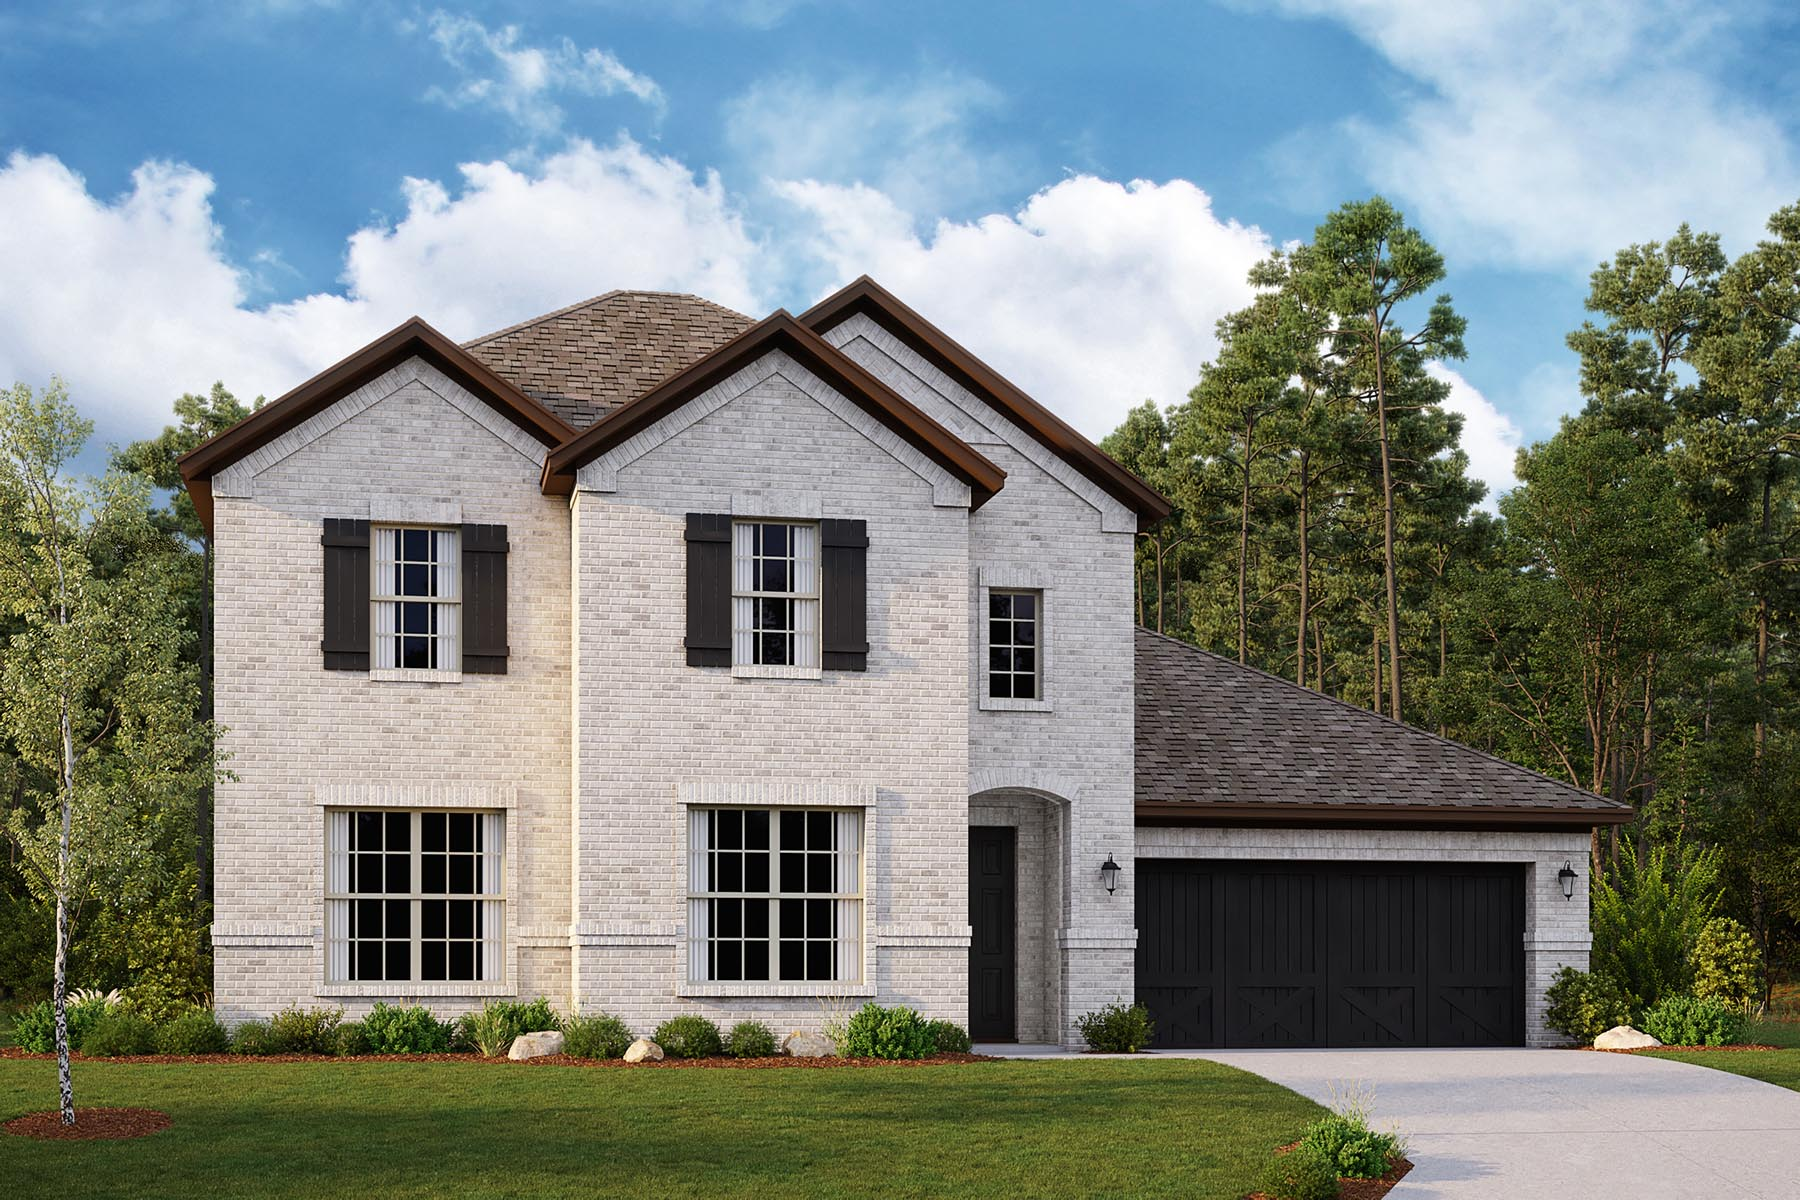 Drexel II Plan DAL_Drexel_B_ElevationExt_1800x1200 at Villages of Creekwood in Frisco Texas by Mattamy Homes